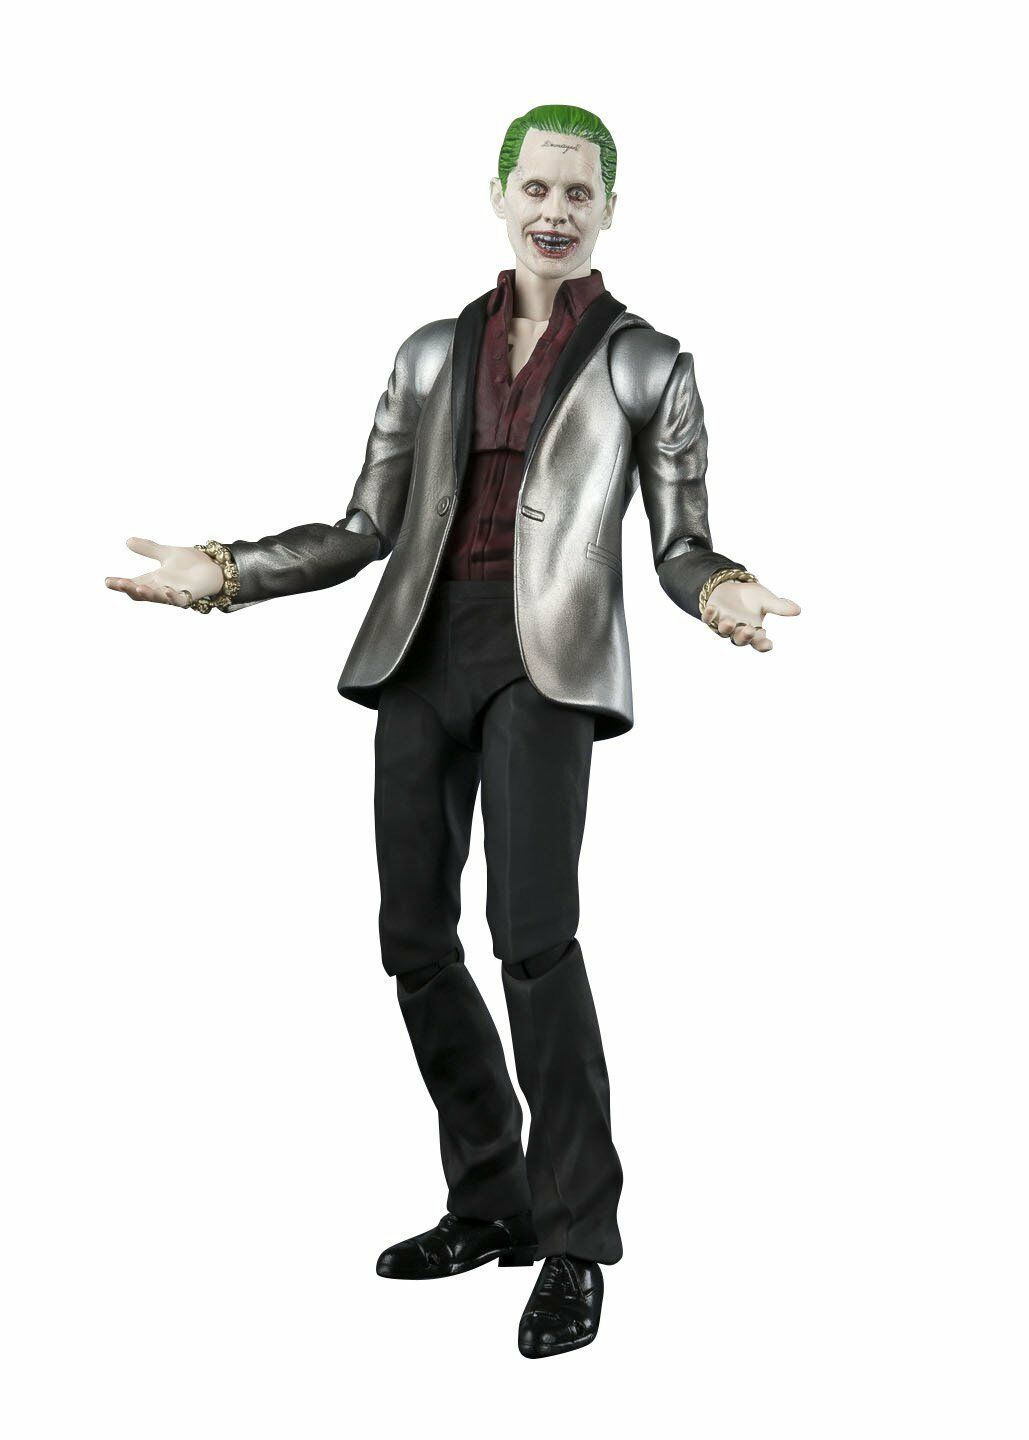 Bandai Tamashii Nations S.H. Figuarts The Joker Suicide Suicide Suicide Squad Action Figure dd778d